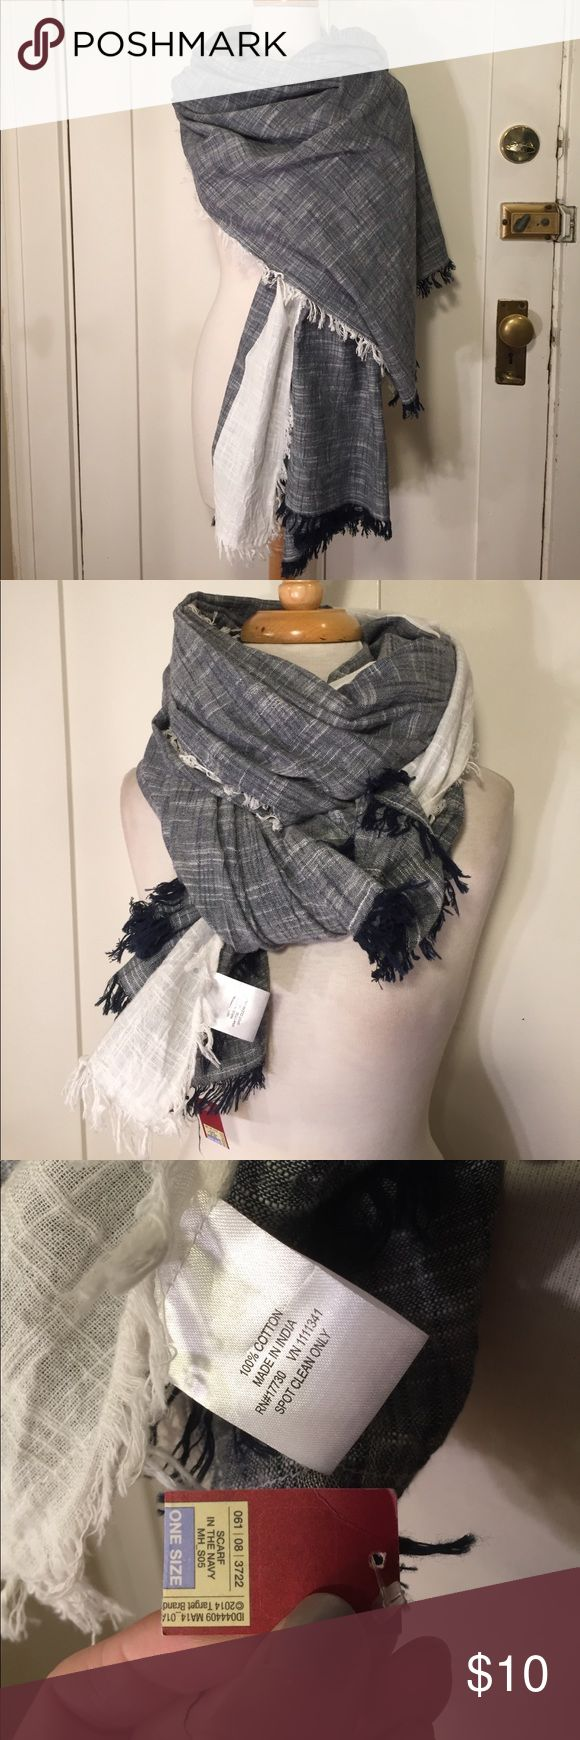 Merona large scarf or wrap navy white cotton NWT This is a large blue and white scarf from Merona.New with tags, cotton with fringe ends. See pictures for details. Be sure and check out other items in closet and bundle to receive discounts. Merona Accessories Scarves & Wraps